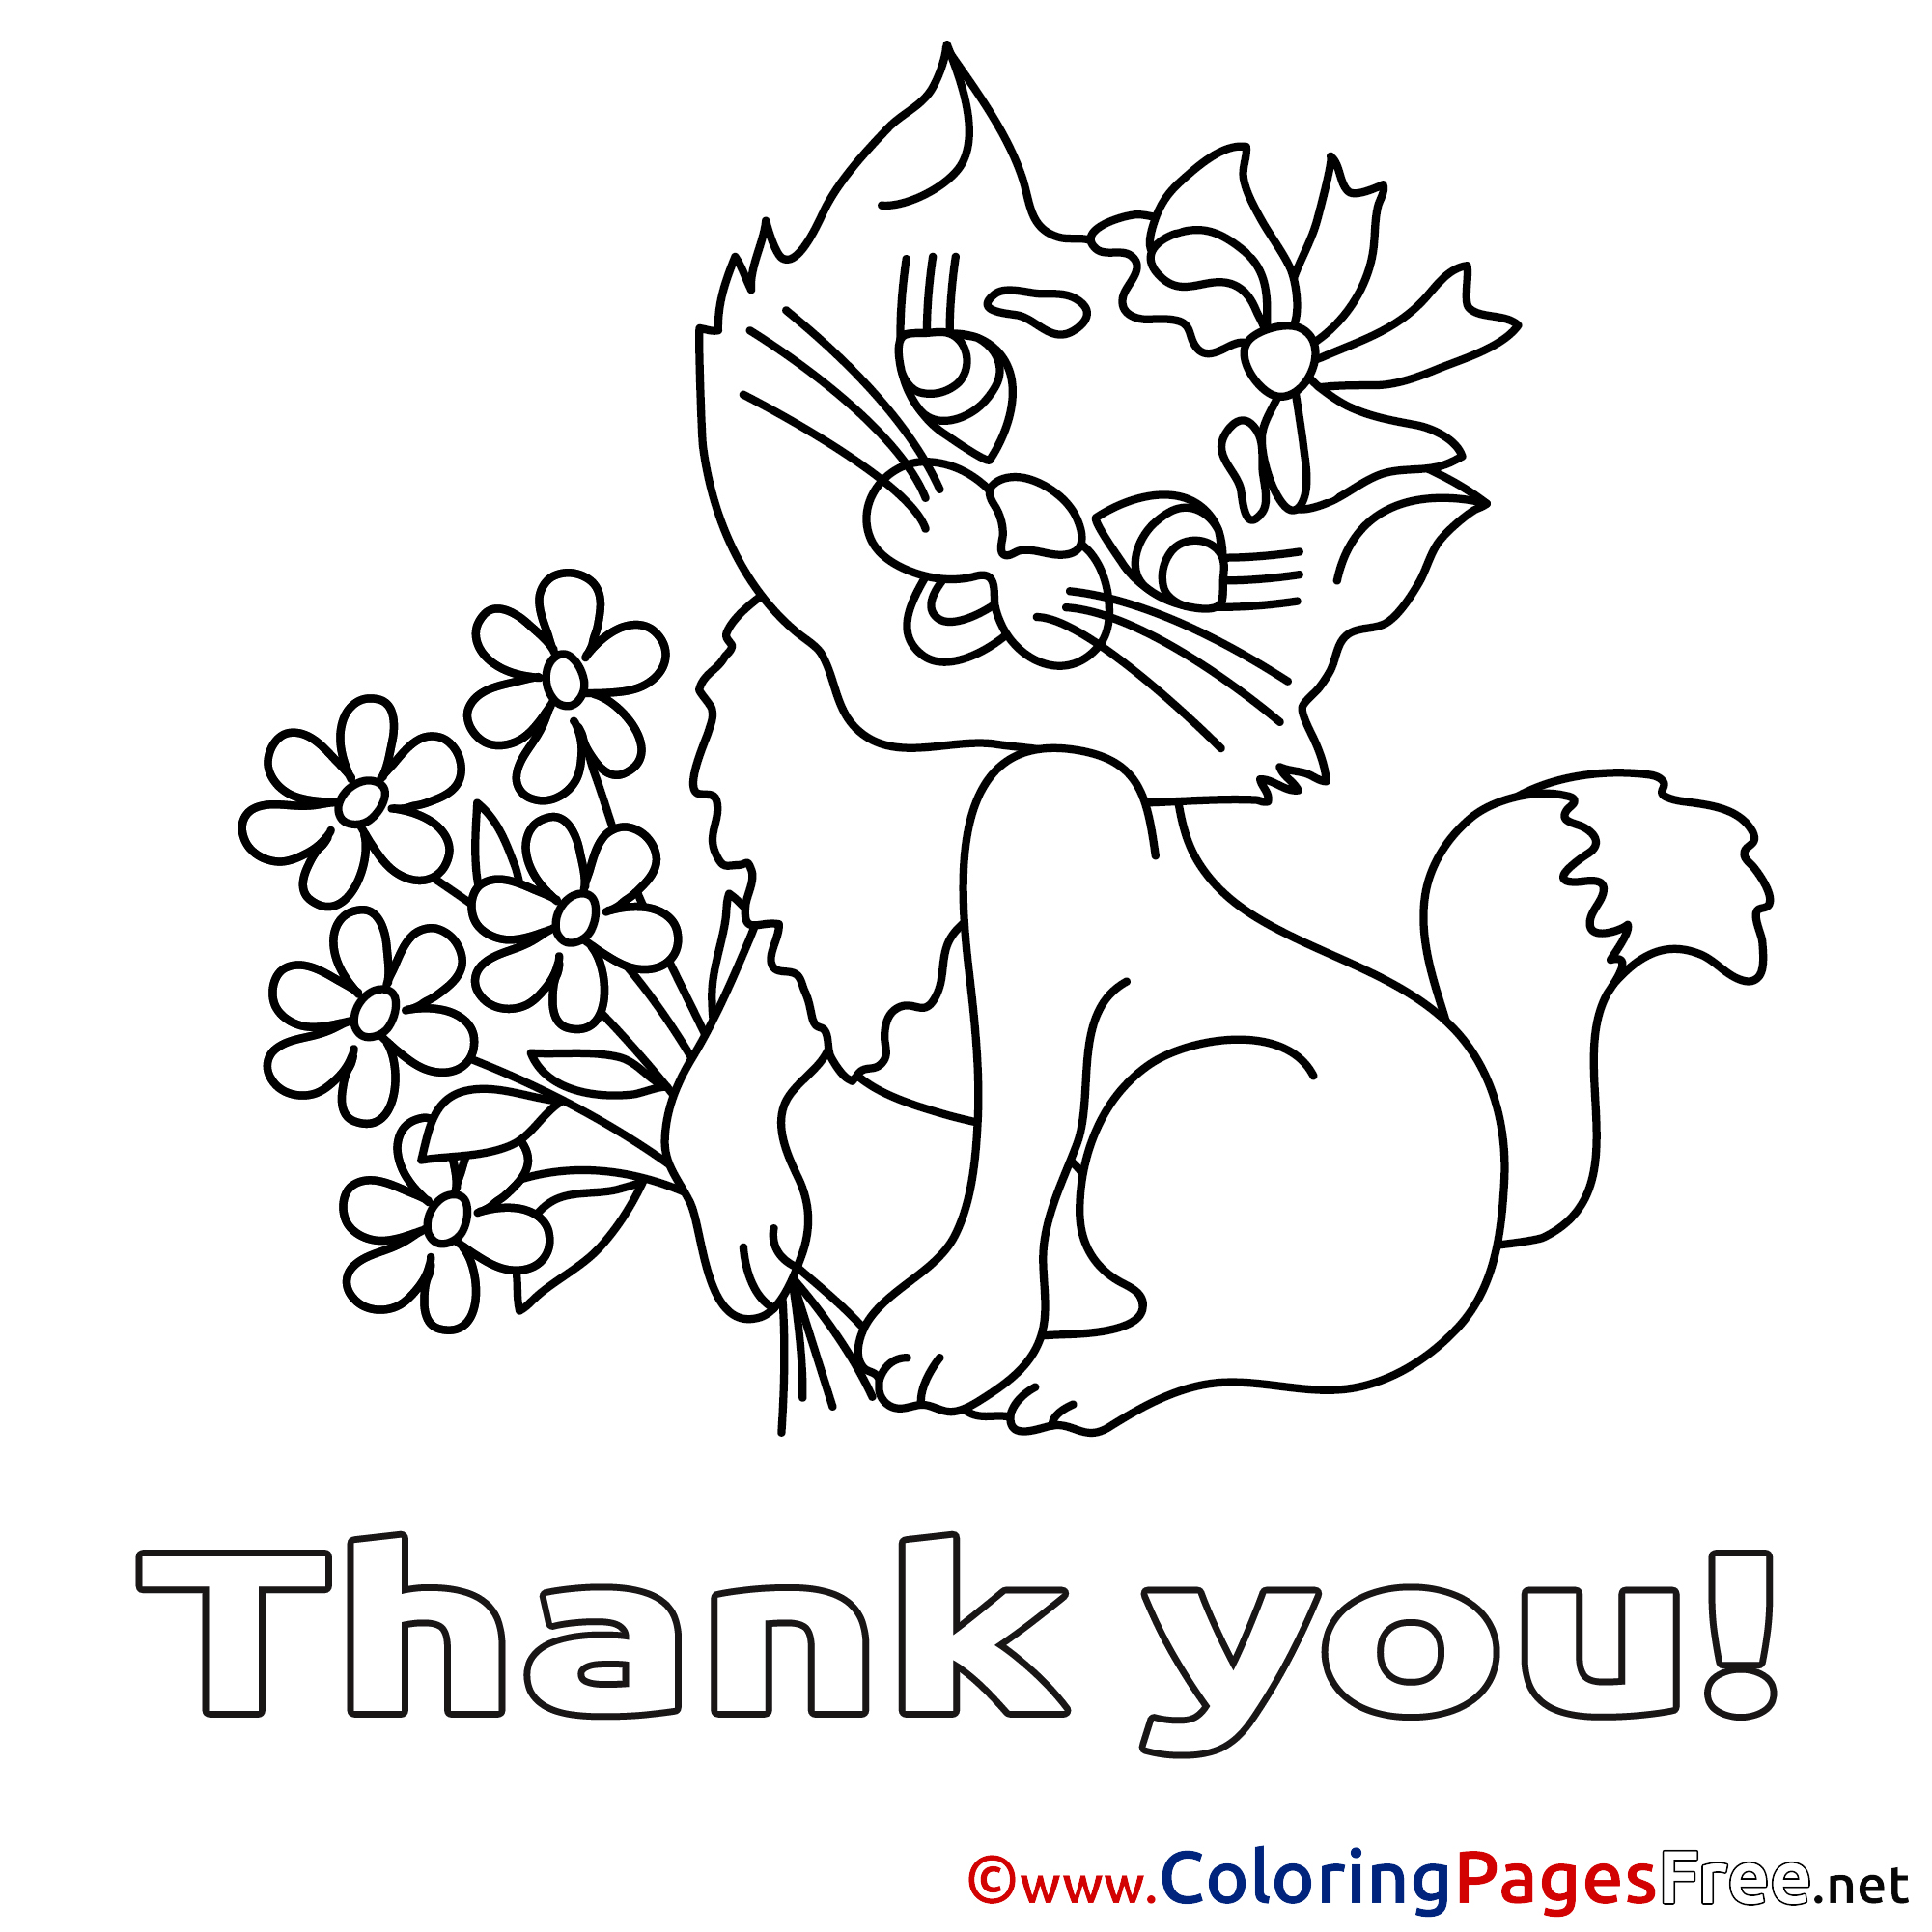 Please And Thank You Coloring Sheet Coloring Pages